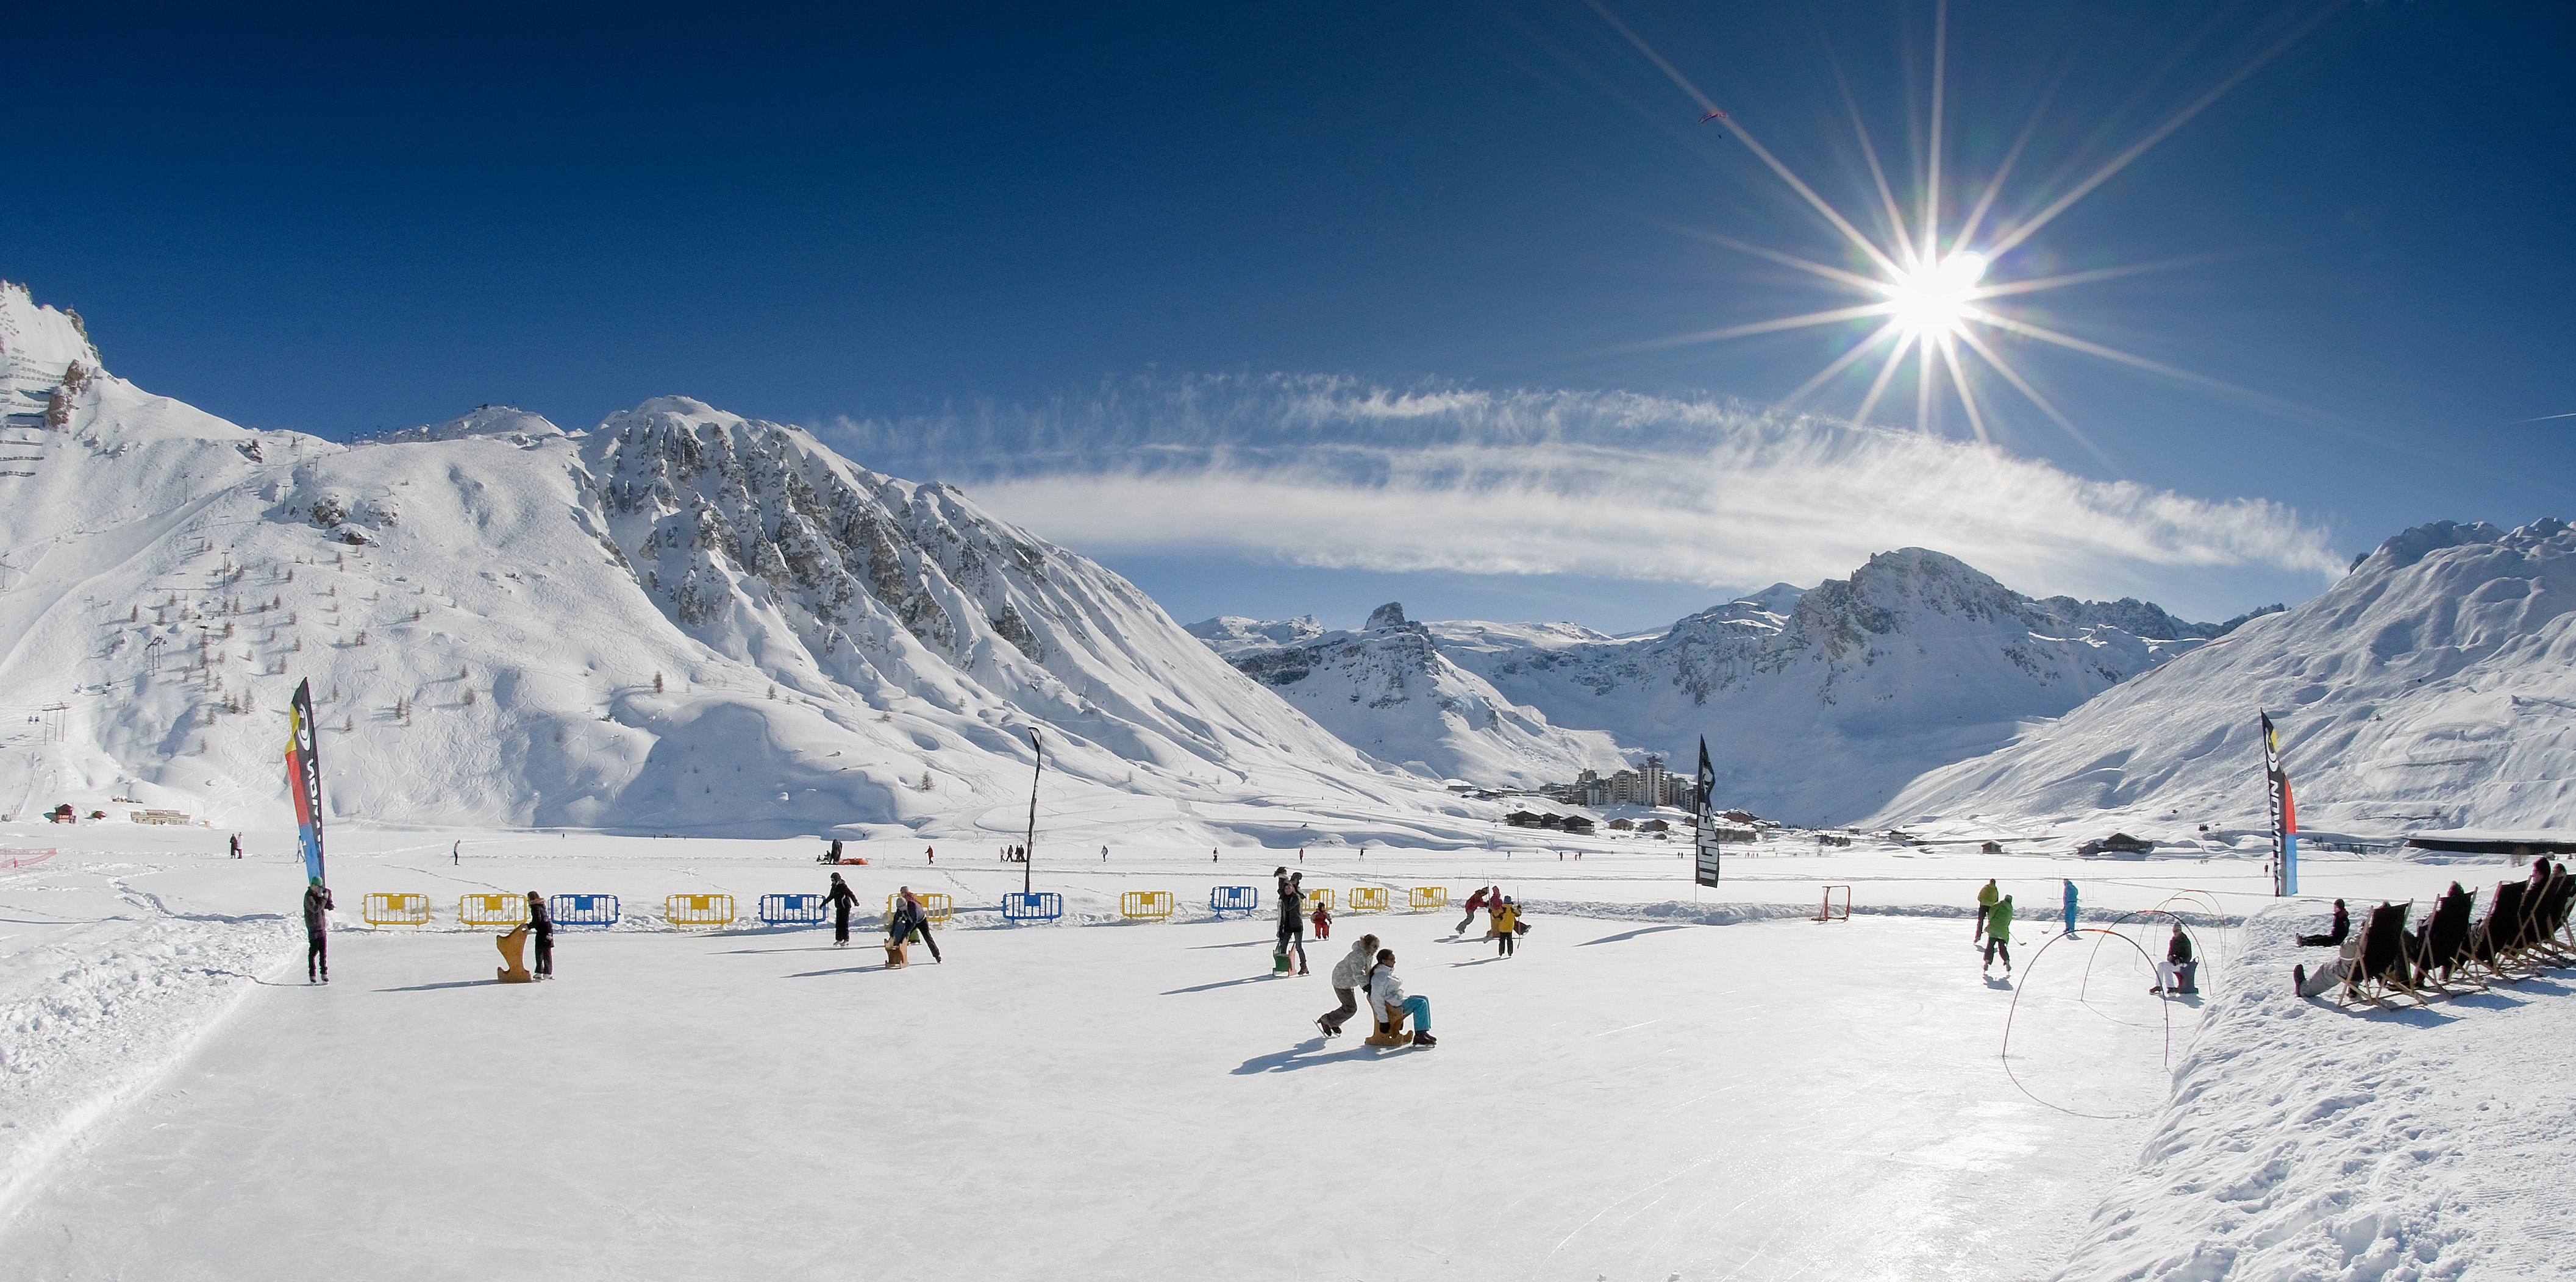 The Best Resorts for a Family Ski Holiday